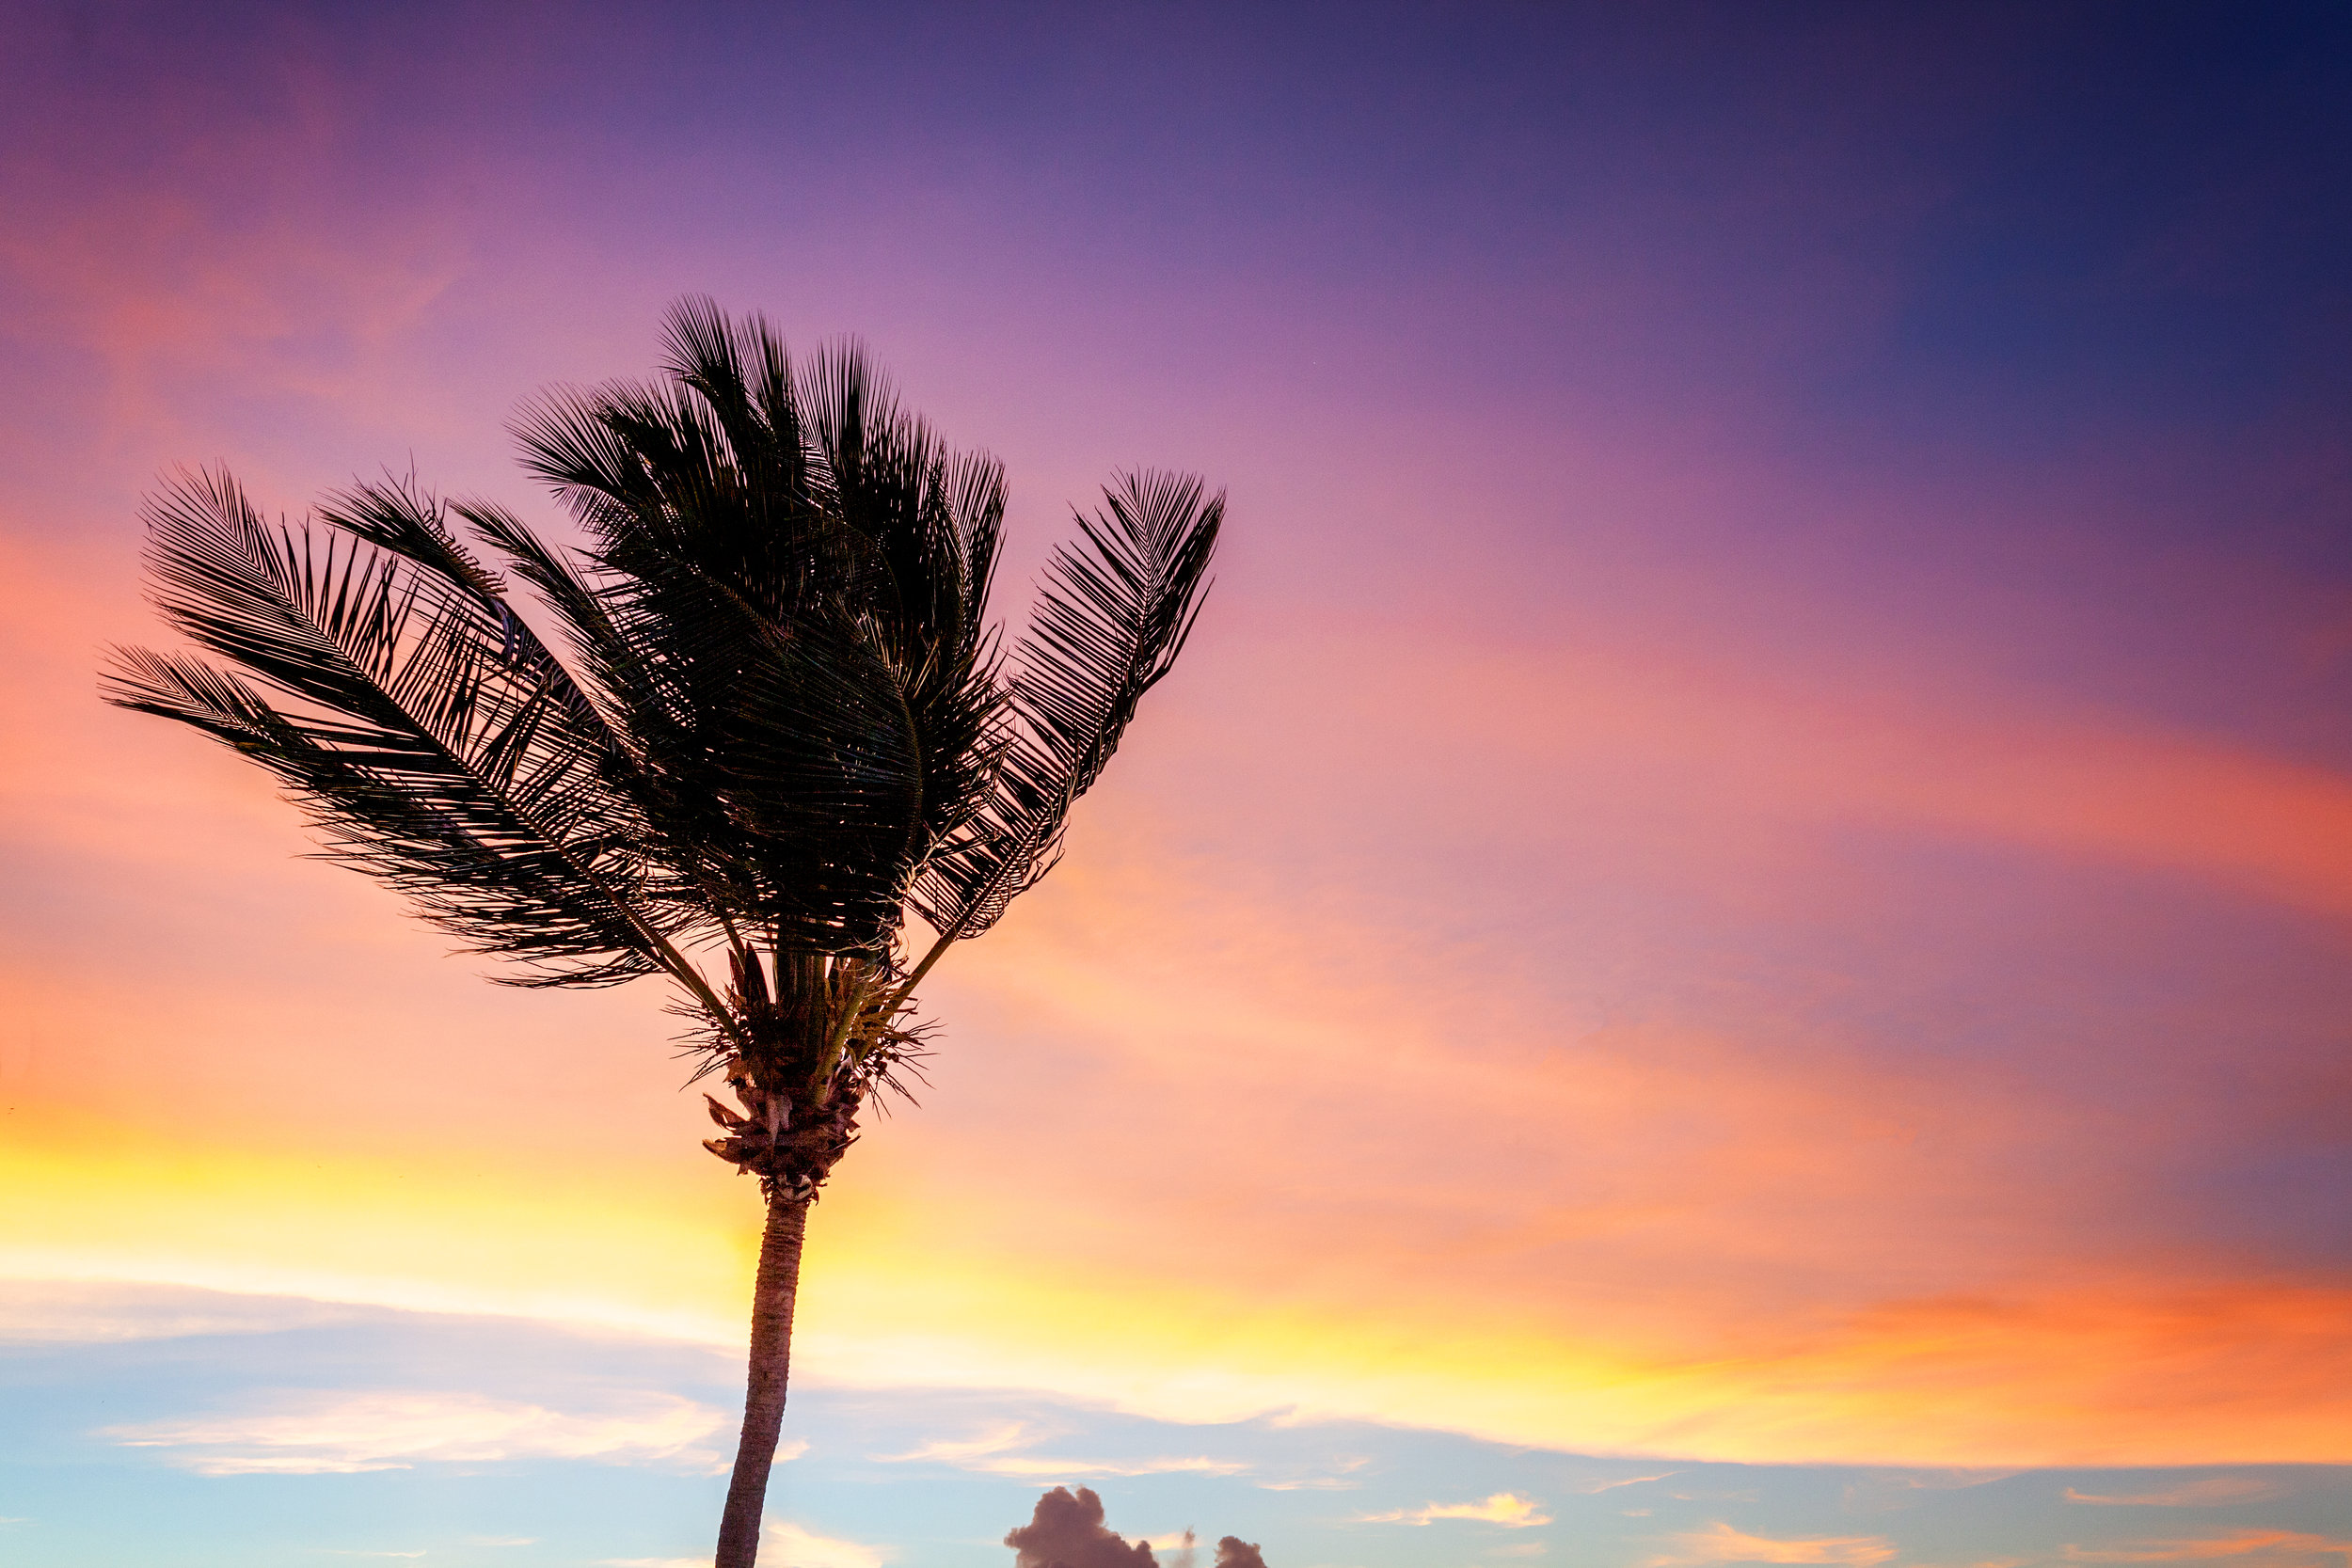 A palm tree in the sunrise